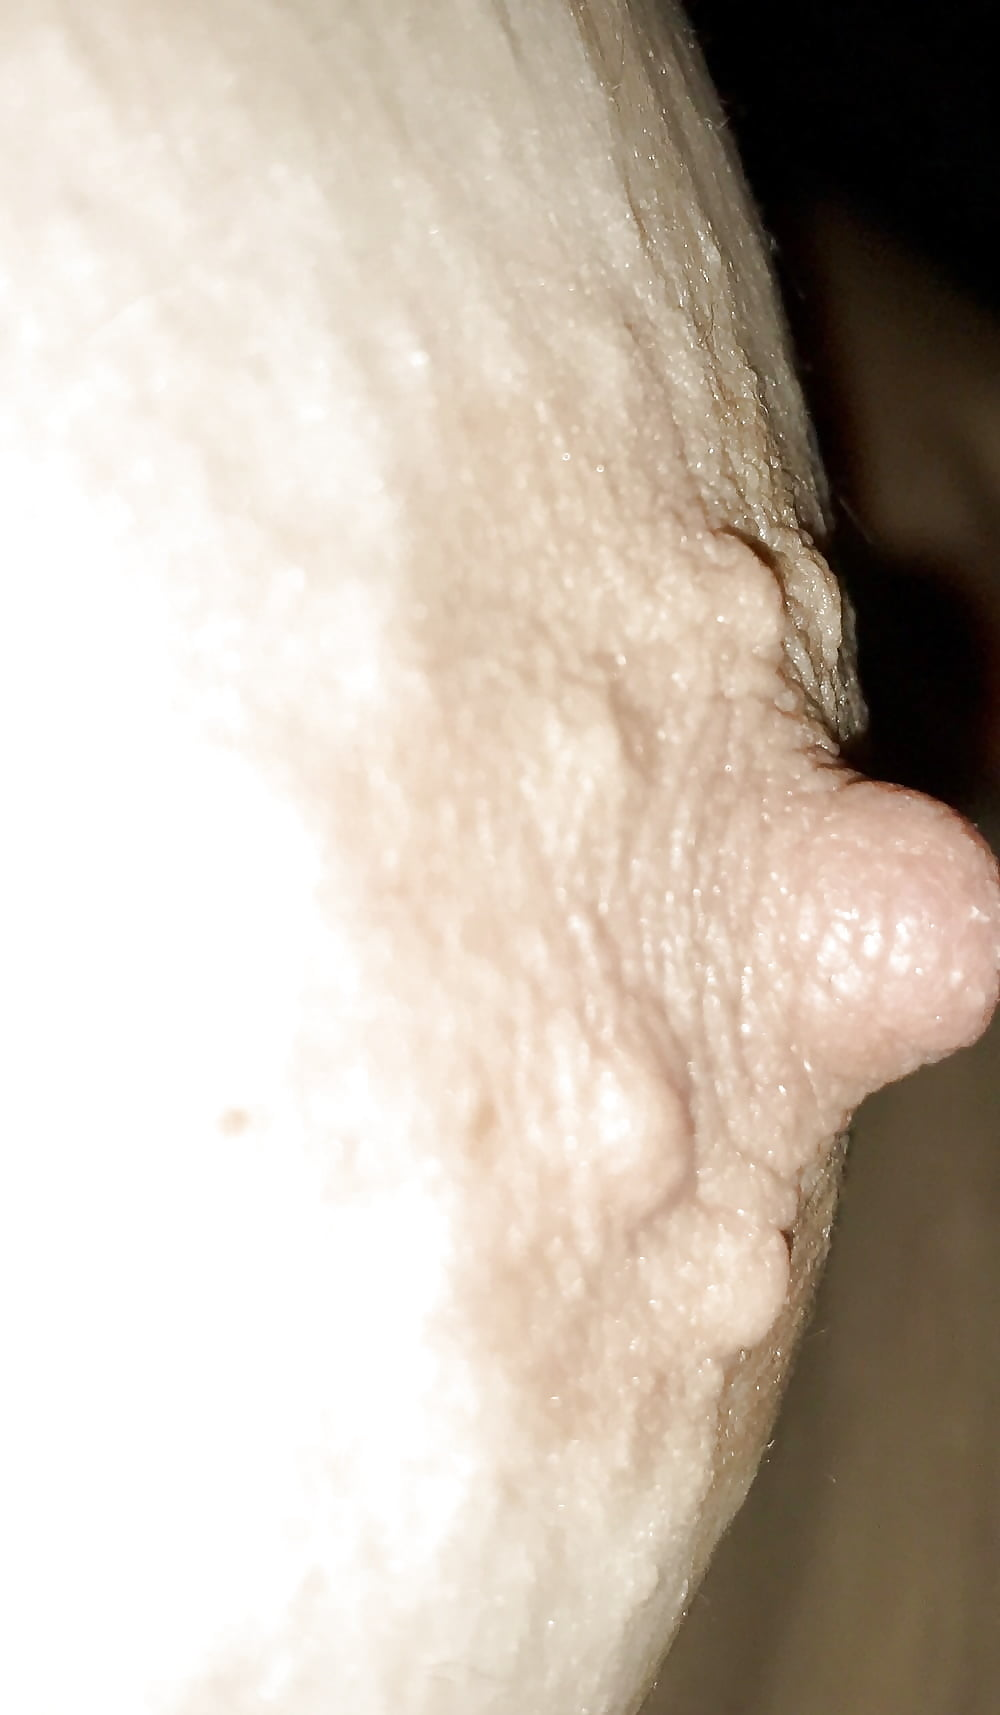 Glands of montgomery porn — pic 6